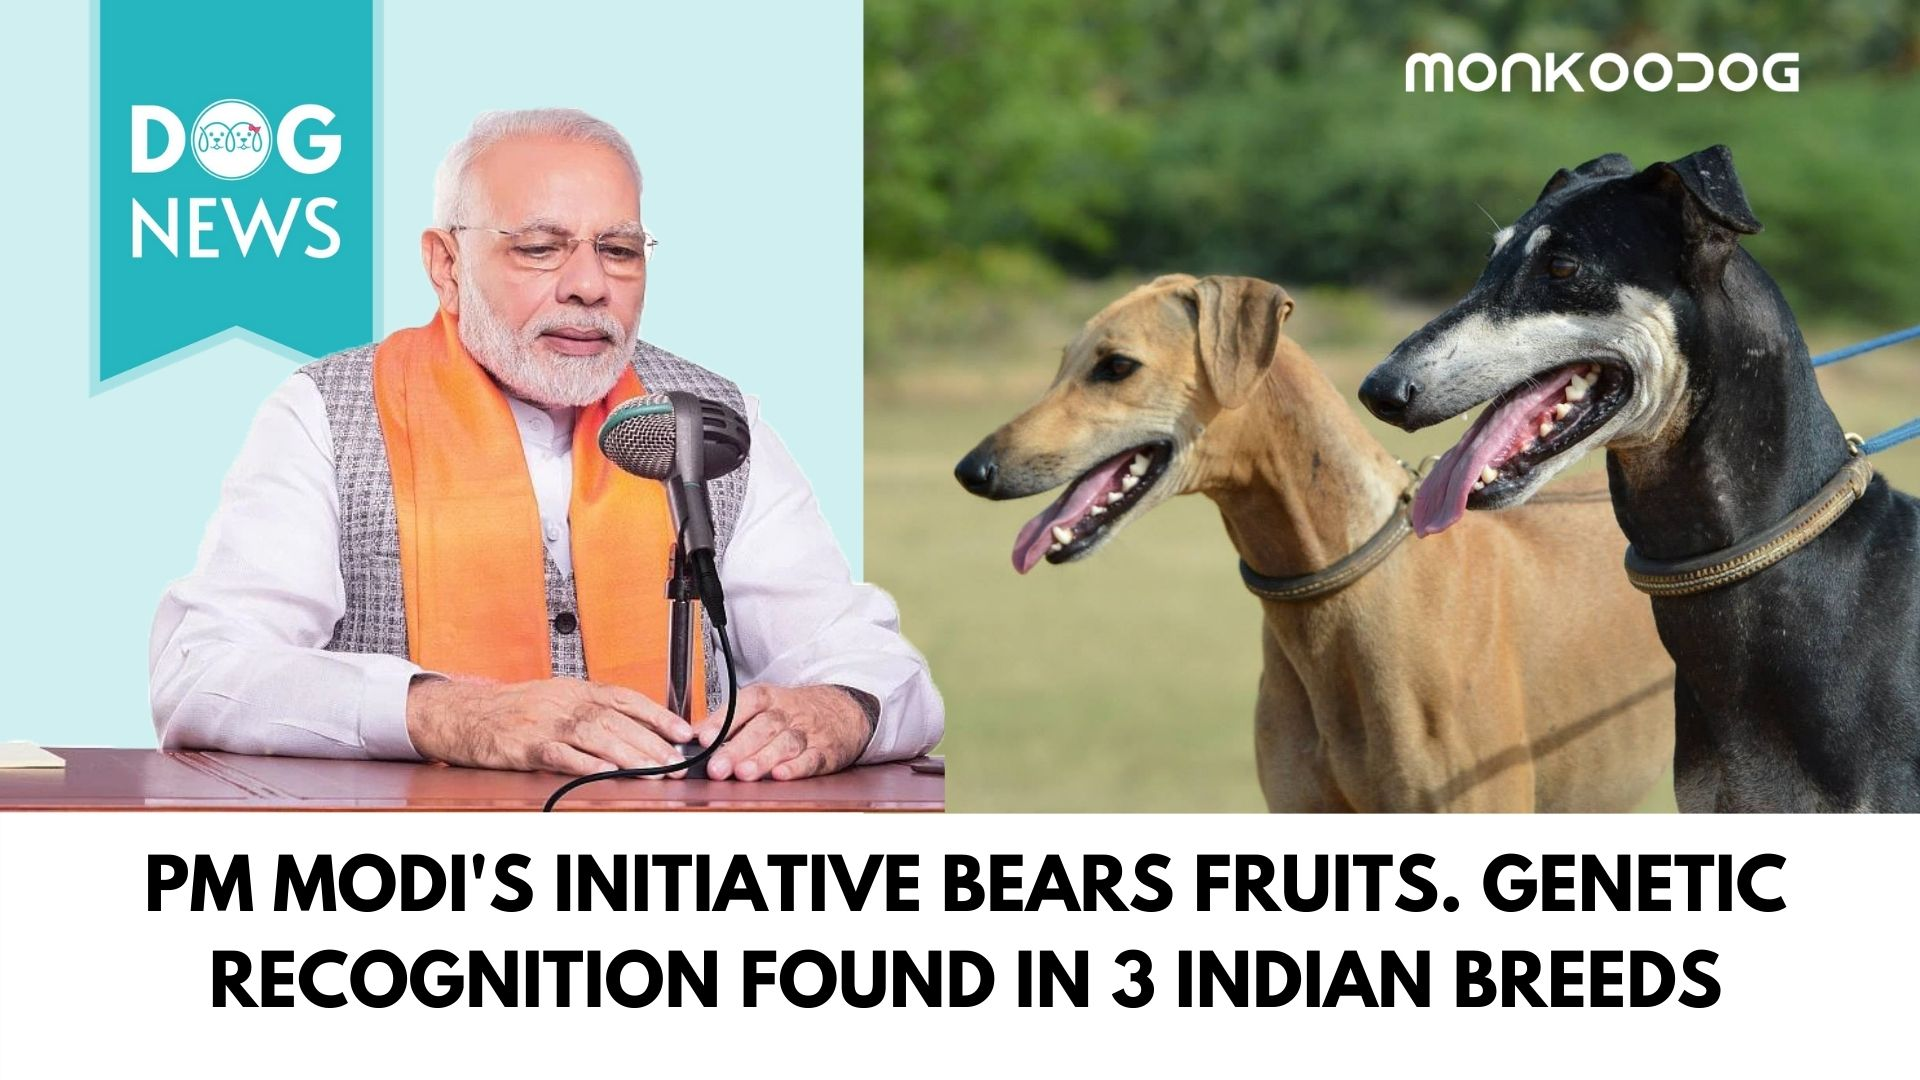 Pm Modi's initiative bears fruits. GENETIC RECOGNITION found in 3 indian breeds